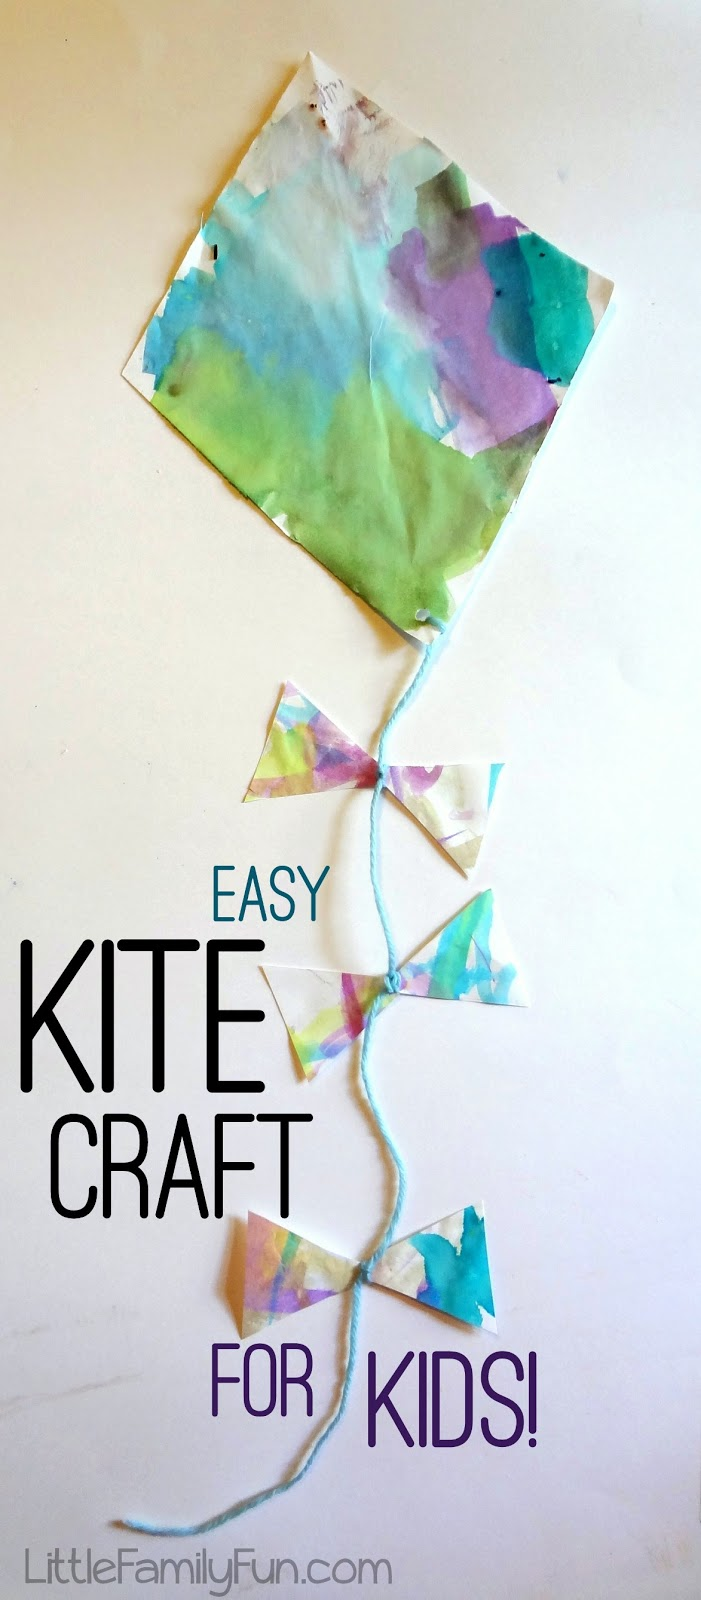 Little Family Fun Easy Kite Craft For Kids